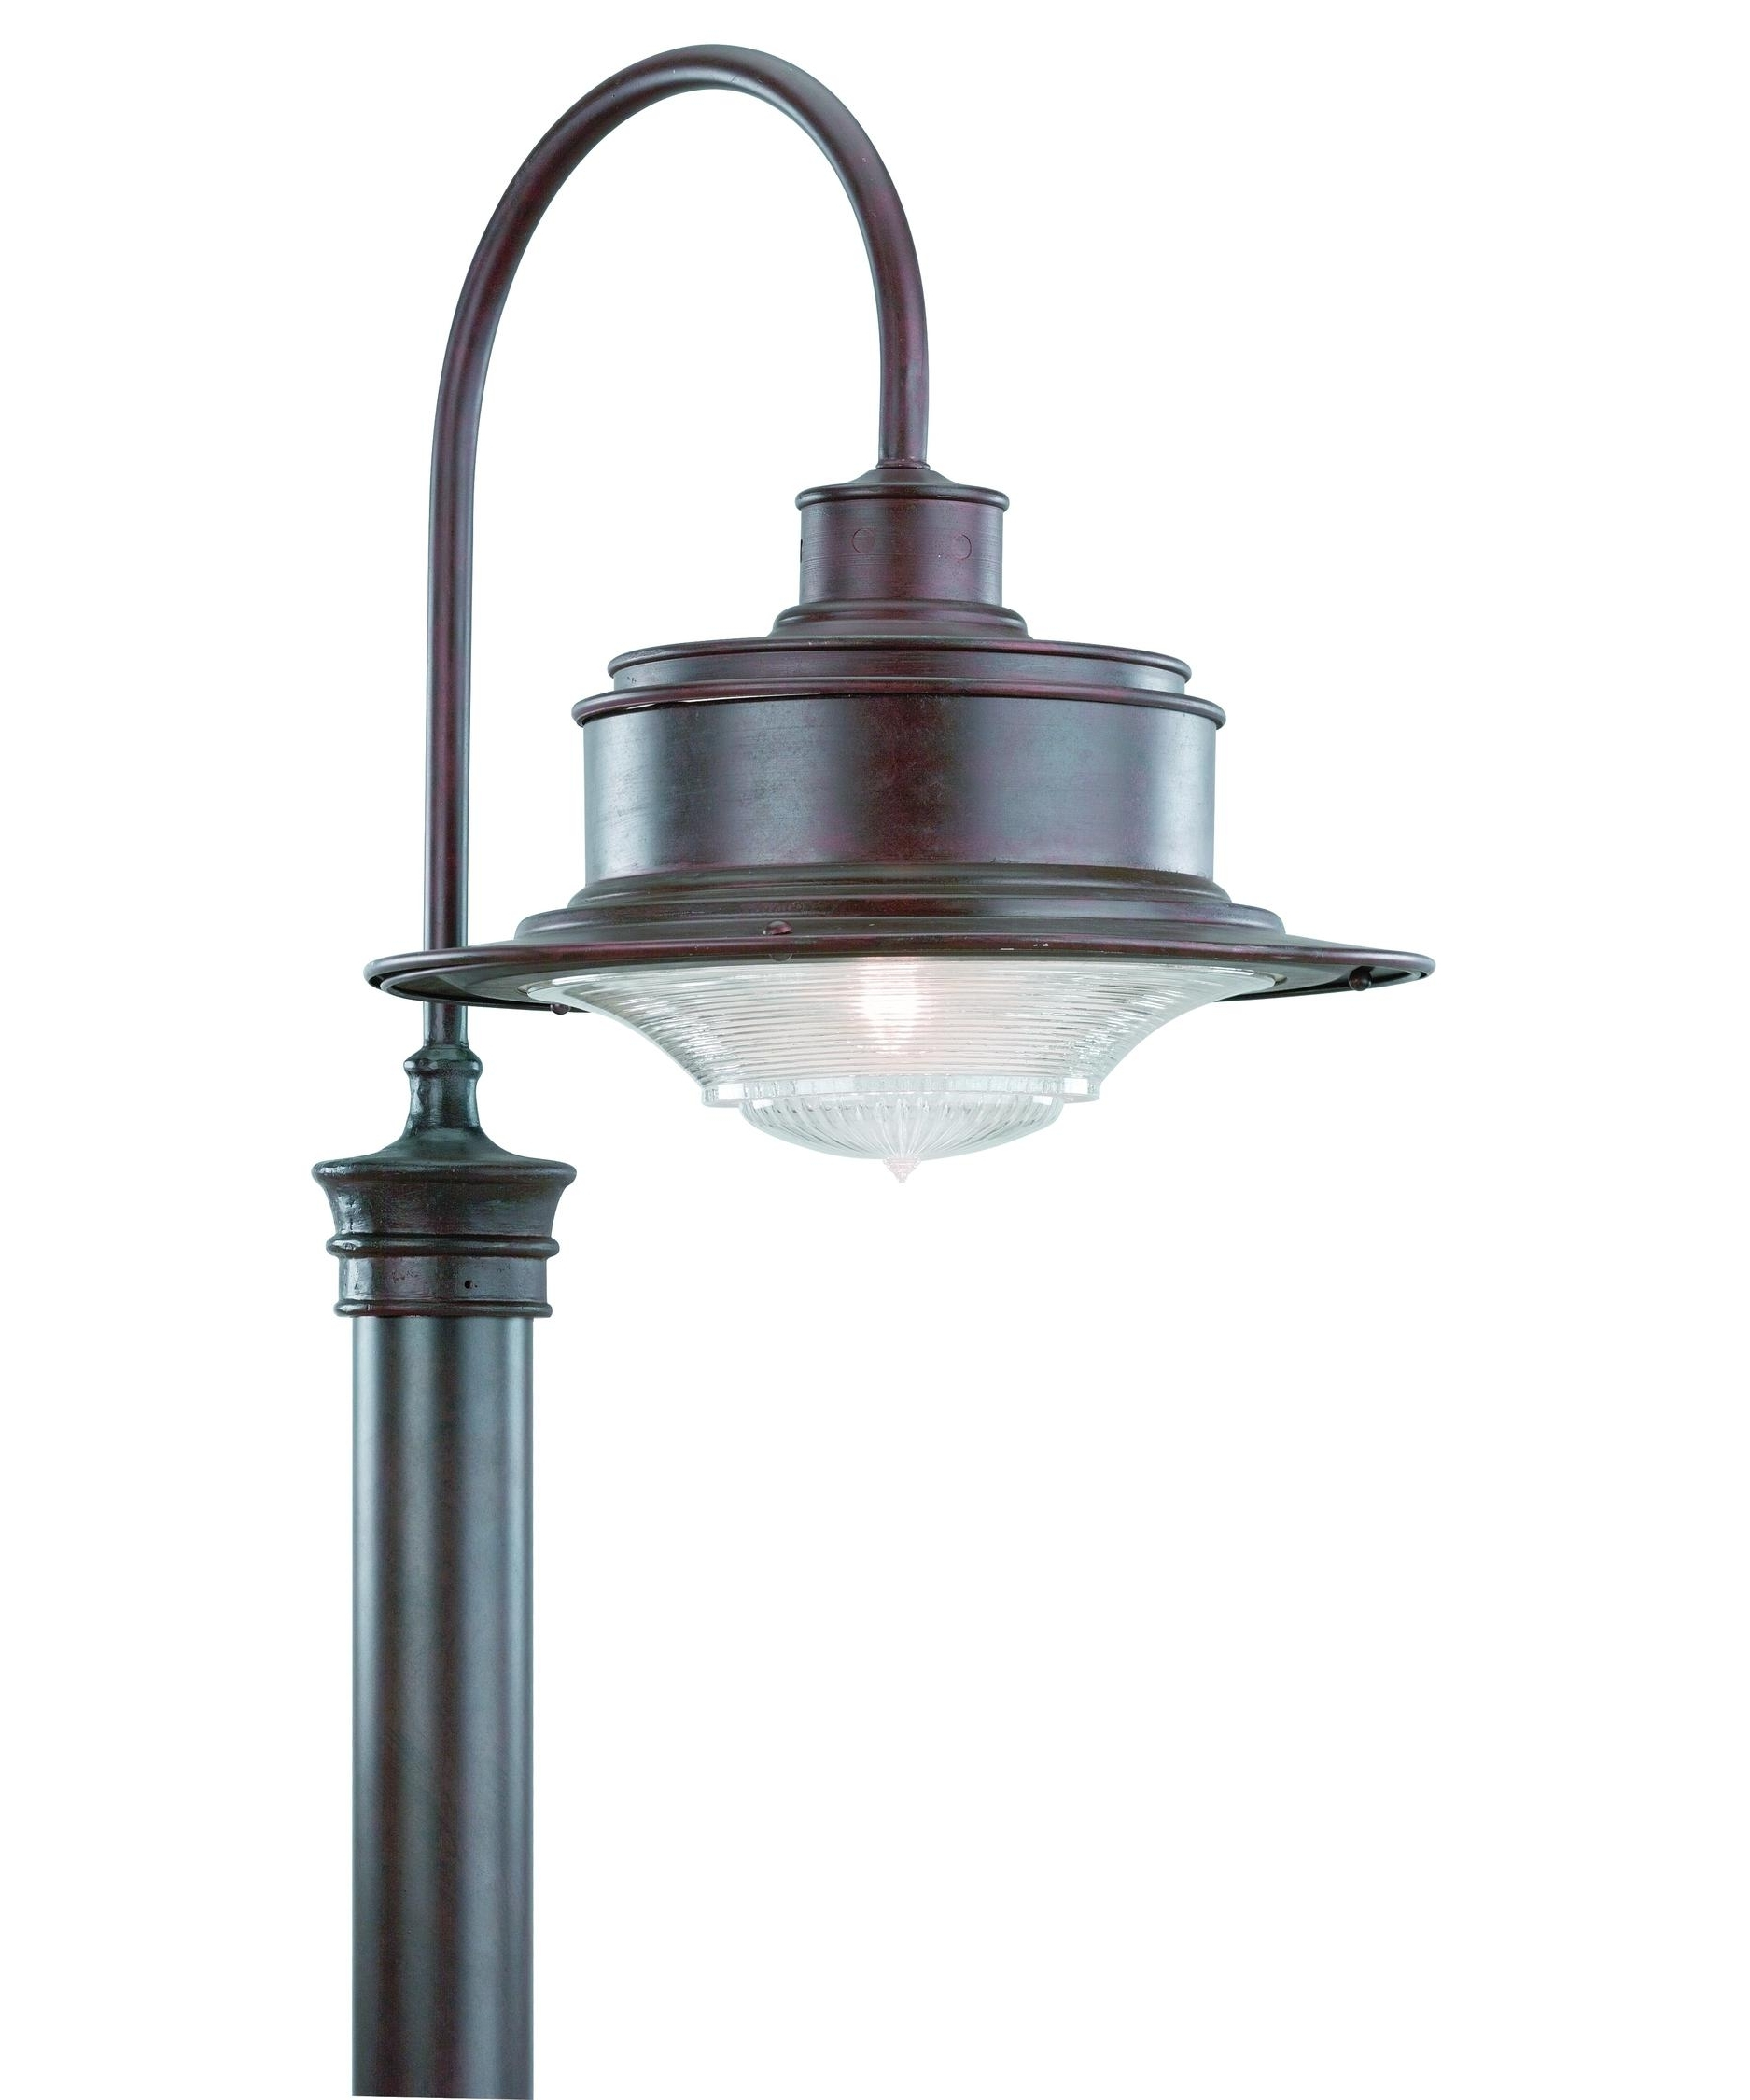 Troy Lighting P9394 South Street 17 Inch Wide 1 Light Outdoor Post Regarding Most Current Outdoor Lanterns For Posts (View 19 of 20)